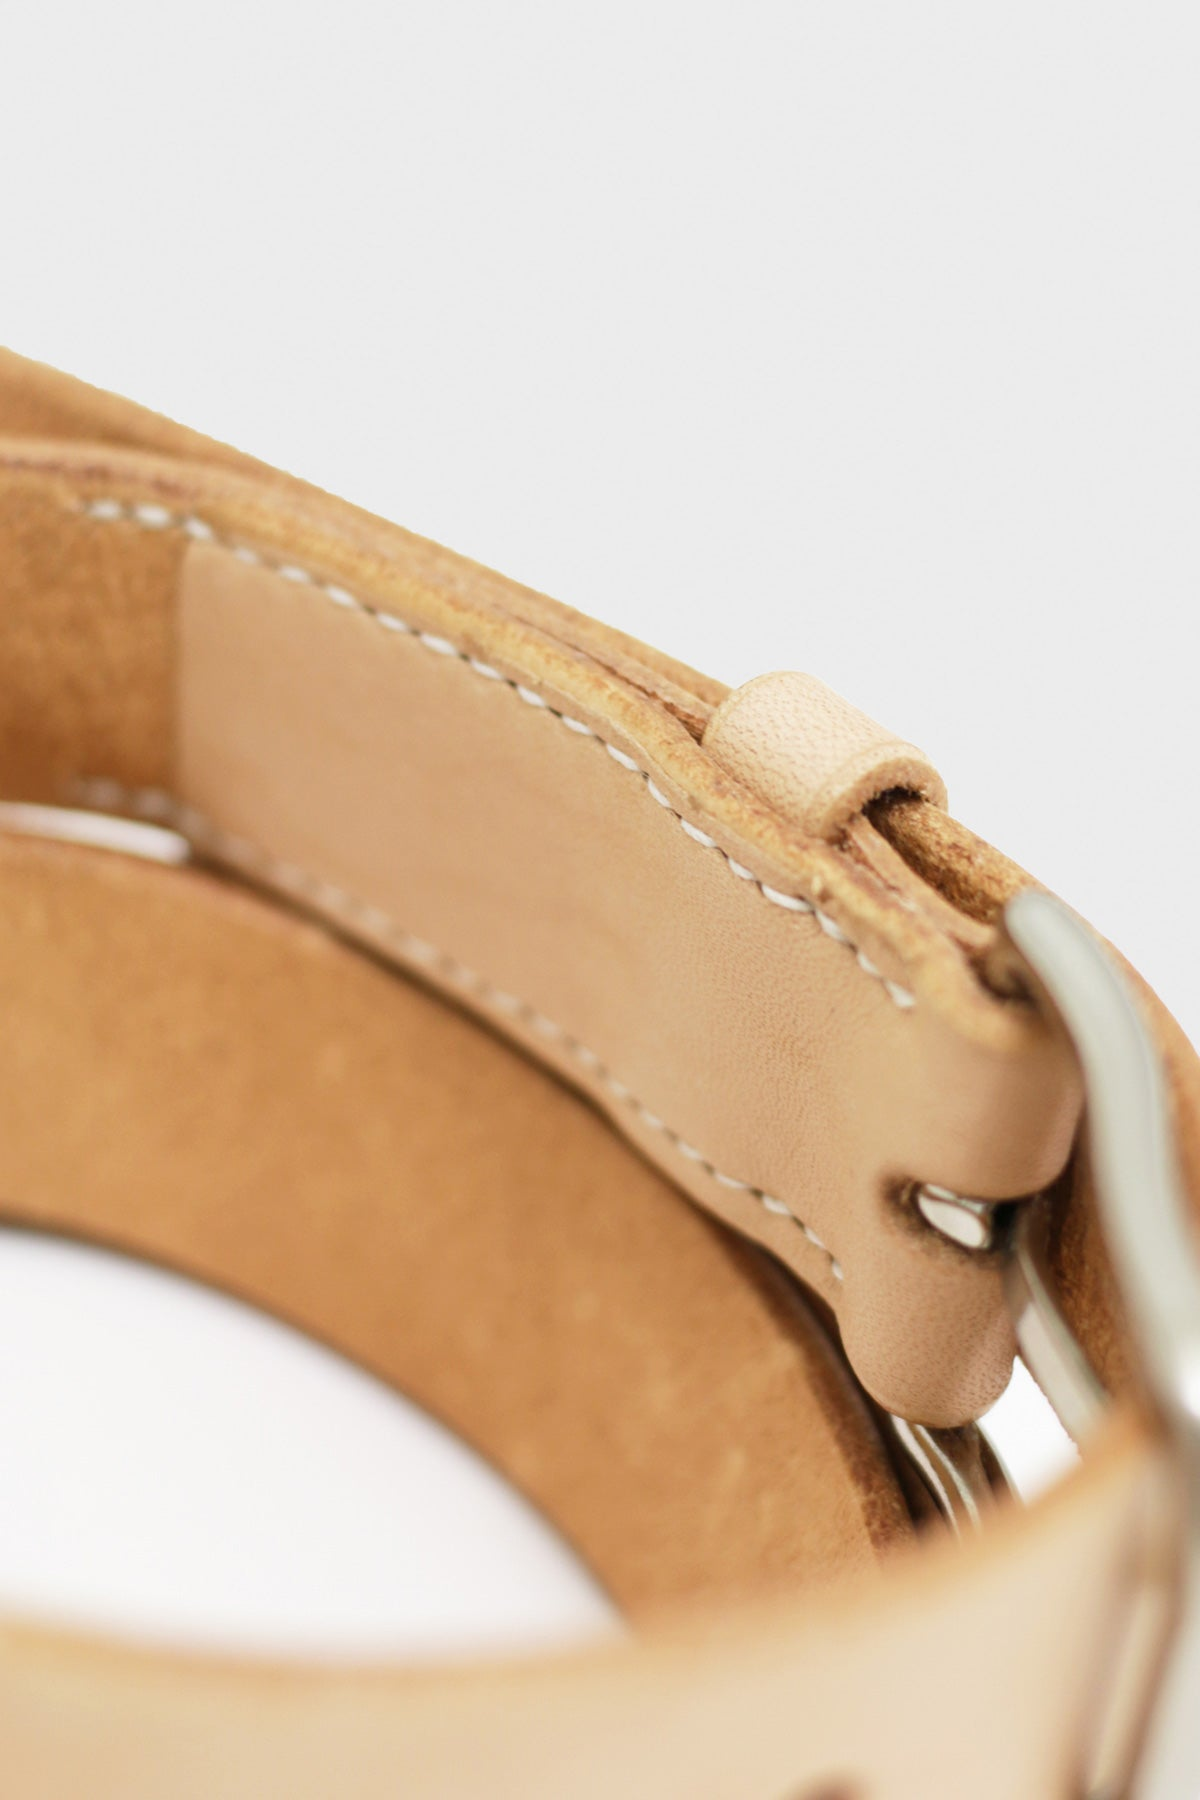 Laperruque - Belt - Natural Leather and Nickel Buckle - Canoe Club